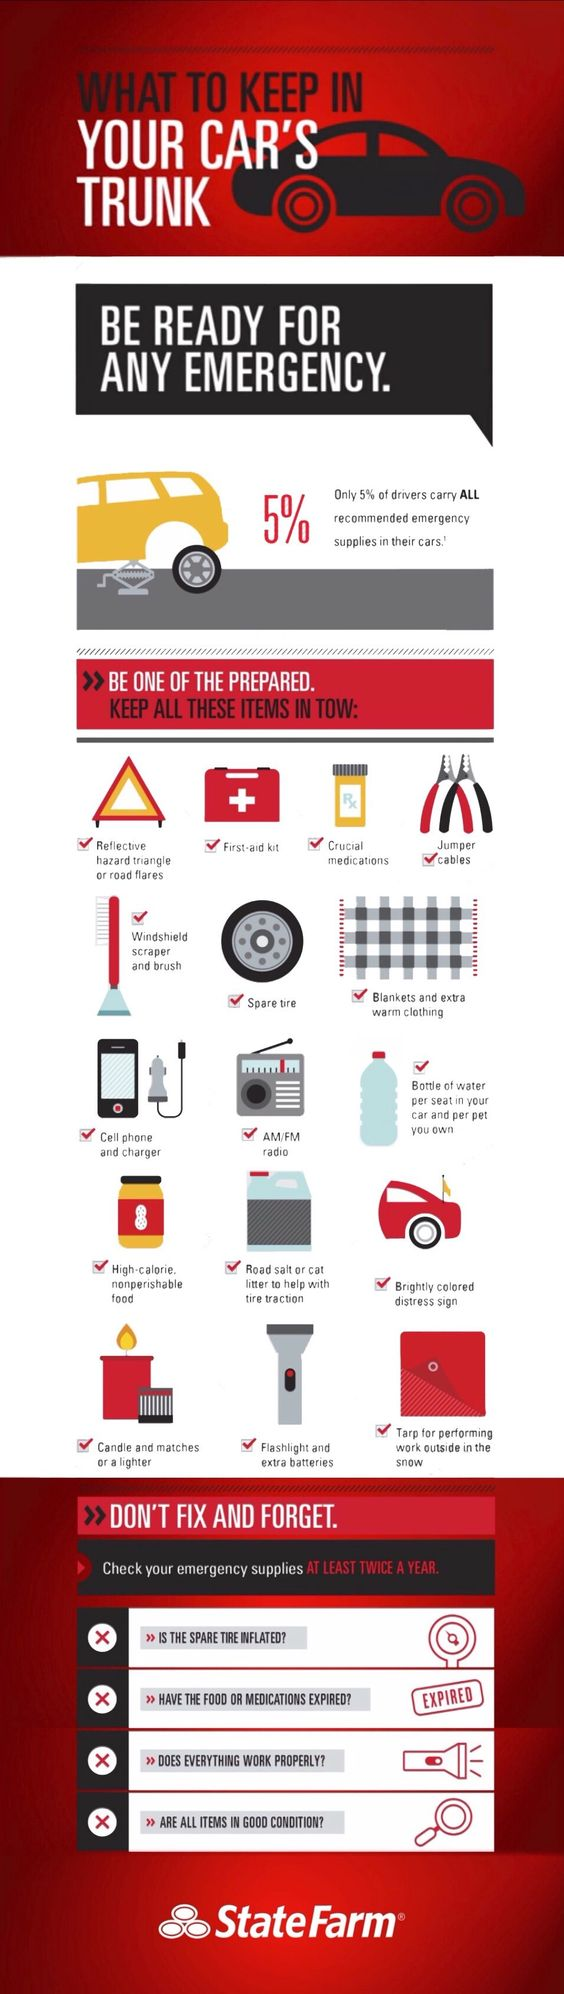 what to keep in your cars trunk